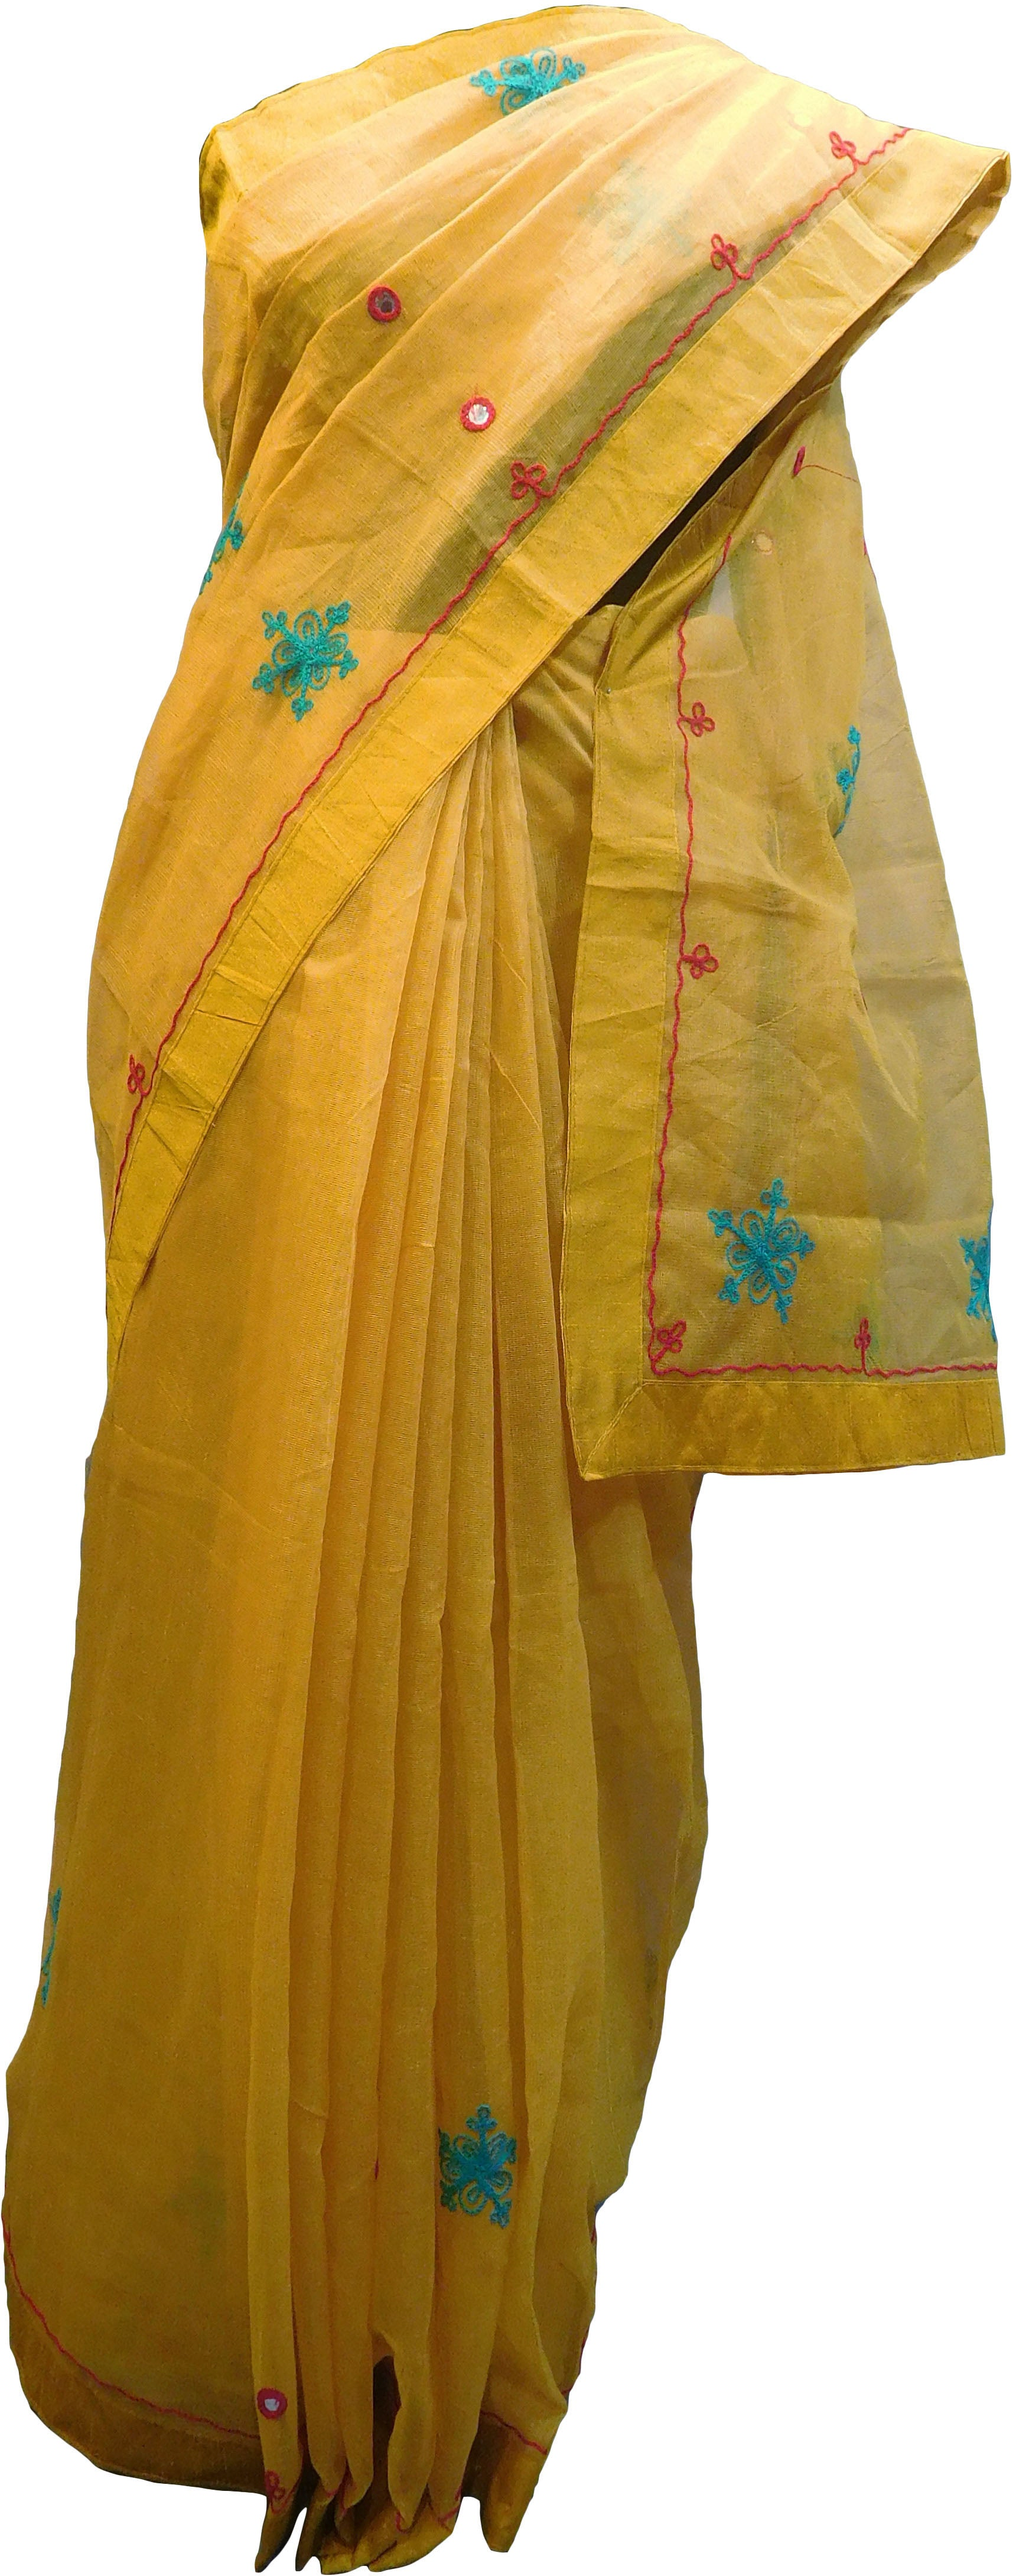 SMSAREE Yellow Designer Wedding Partywear Supernet (Cotton) Thread Hand Embroidery Work Bridal Saree Sari With Blouse Piece F028